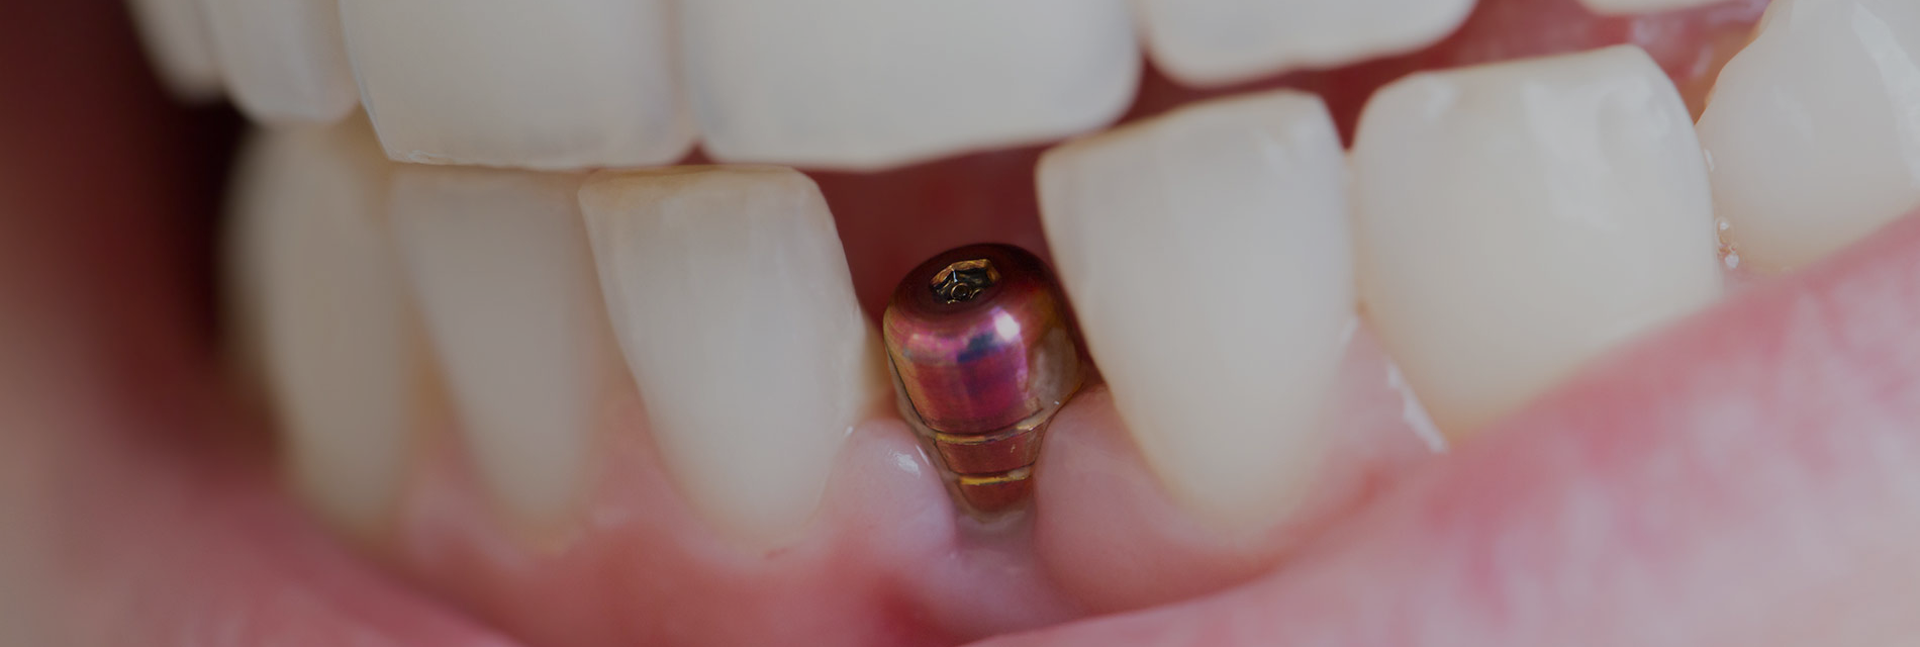 Dental Implants Page